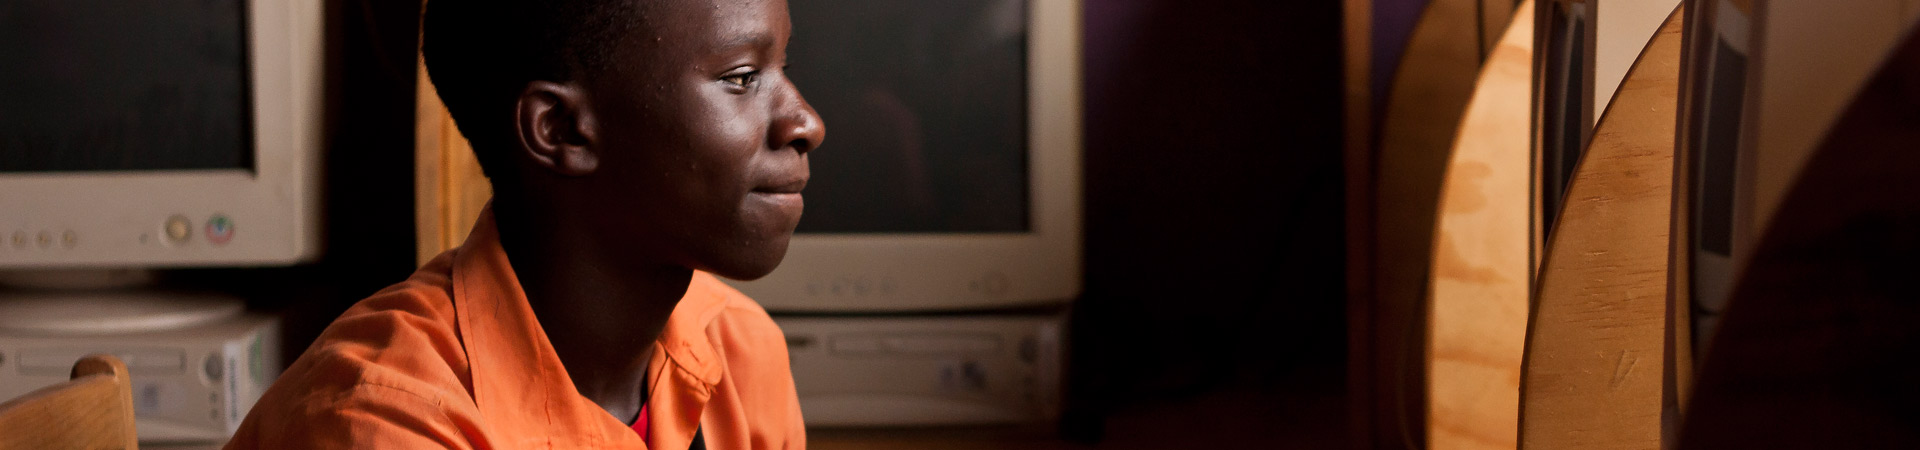 Raise a Smile - school pupil learns in computing lessons - education in Zambia